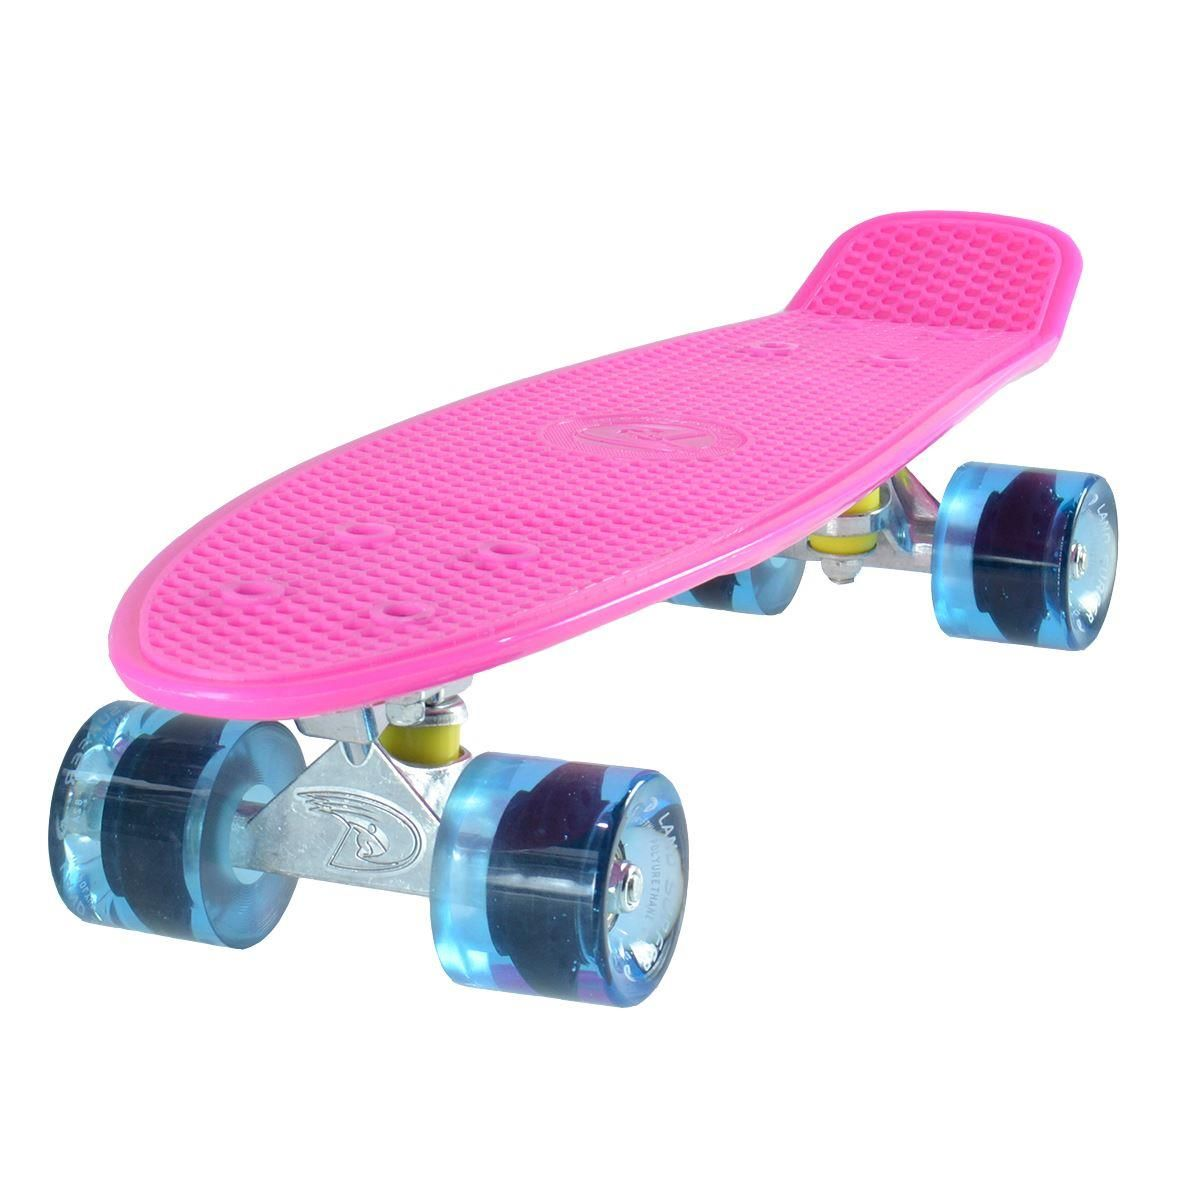 "Land Surfer Cruiser Skateboard 22"" PINK BOARD TRANSPARENT BLUE WHEELS"